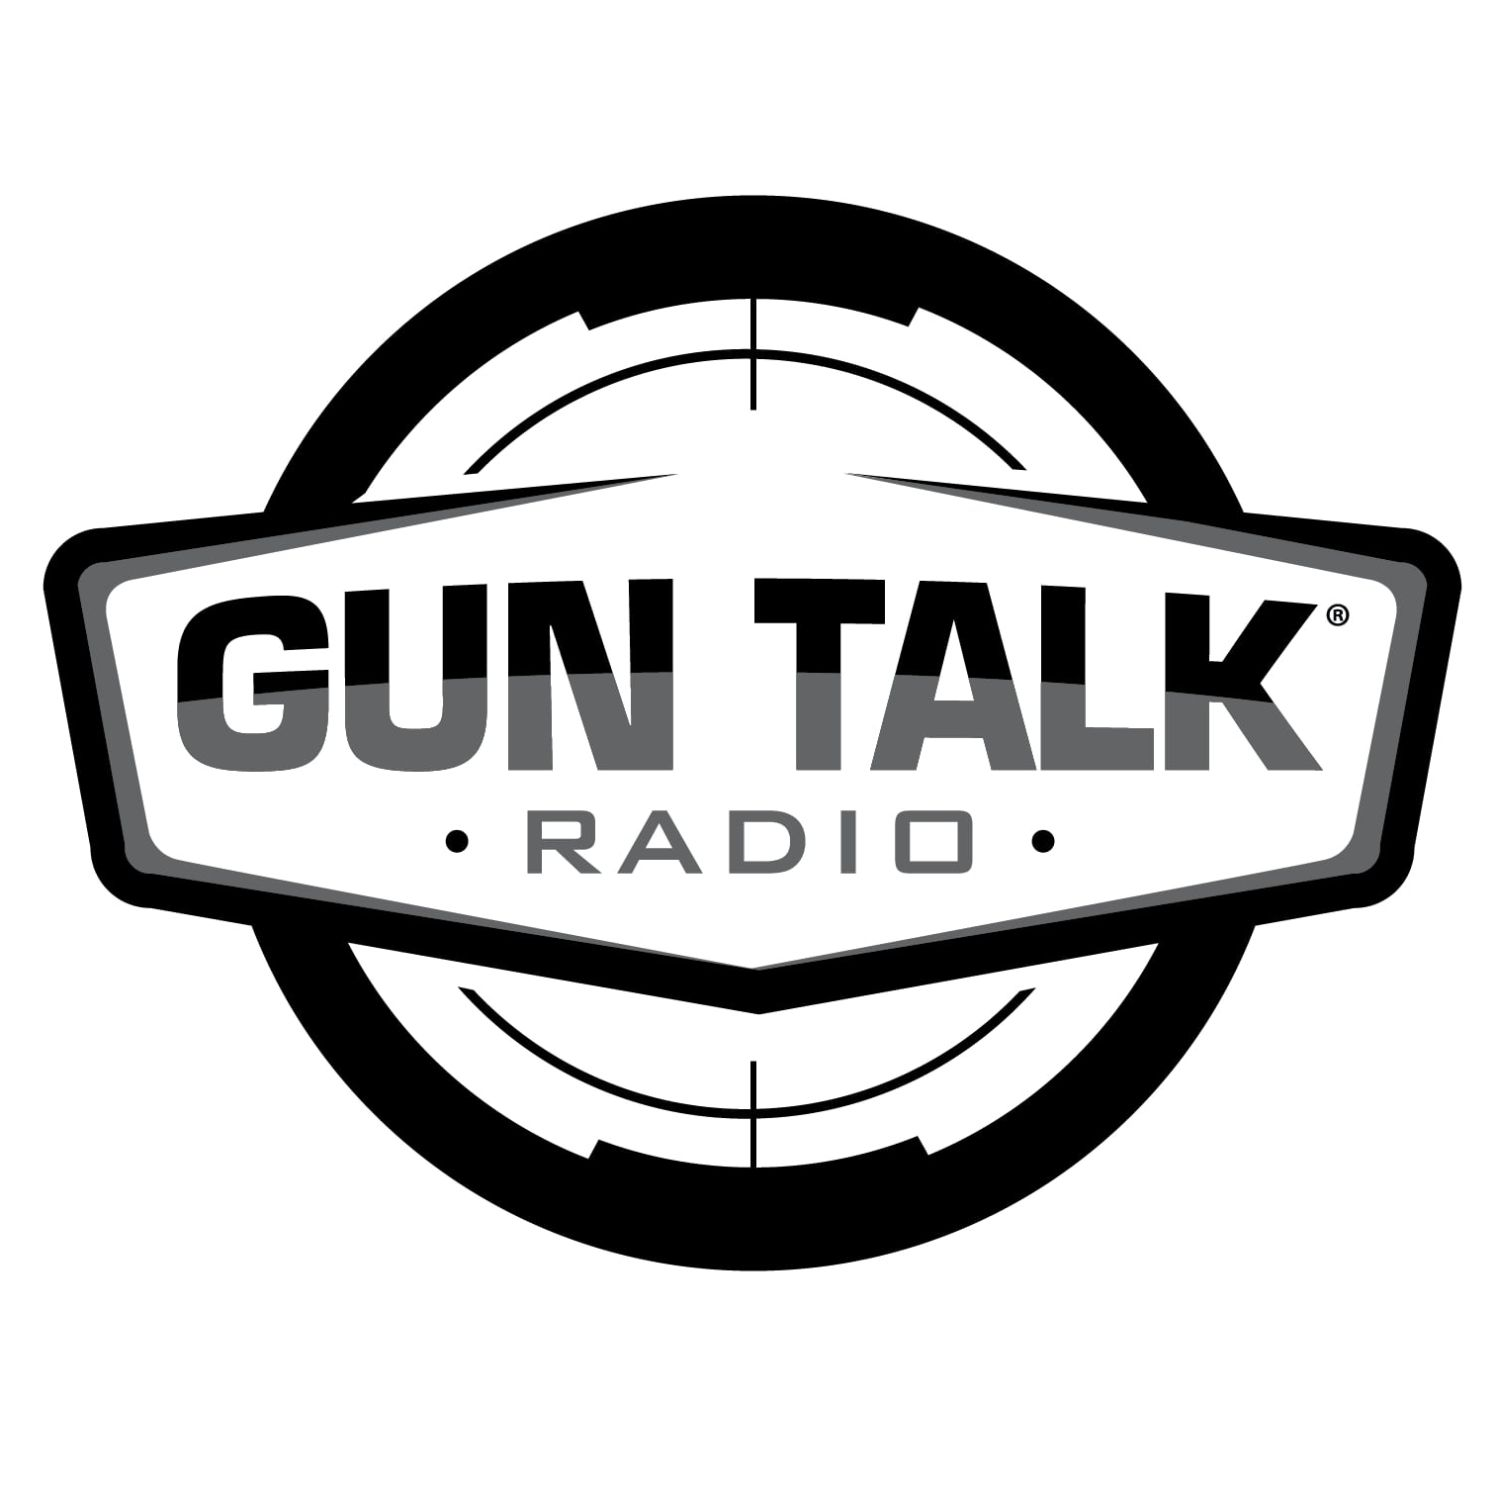 Artwork for Guntalk 2010-02-28 Part C